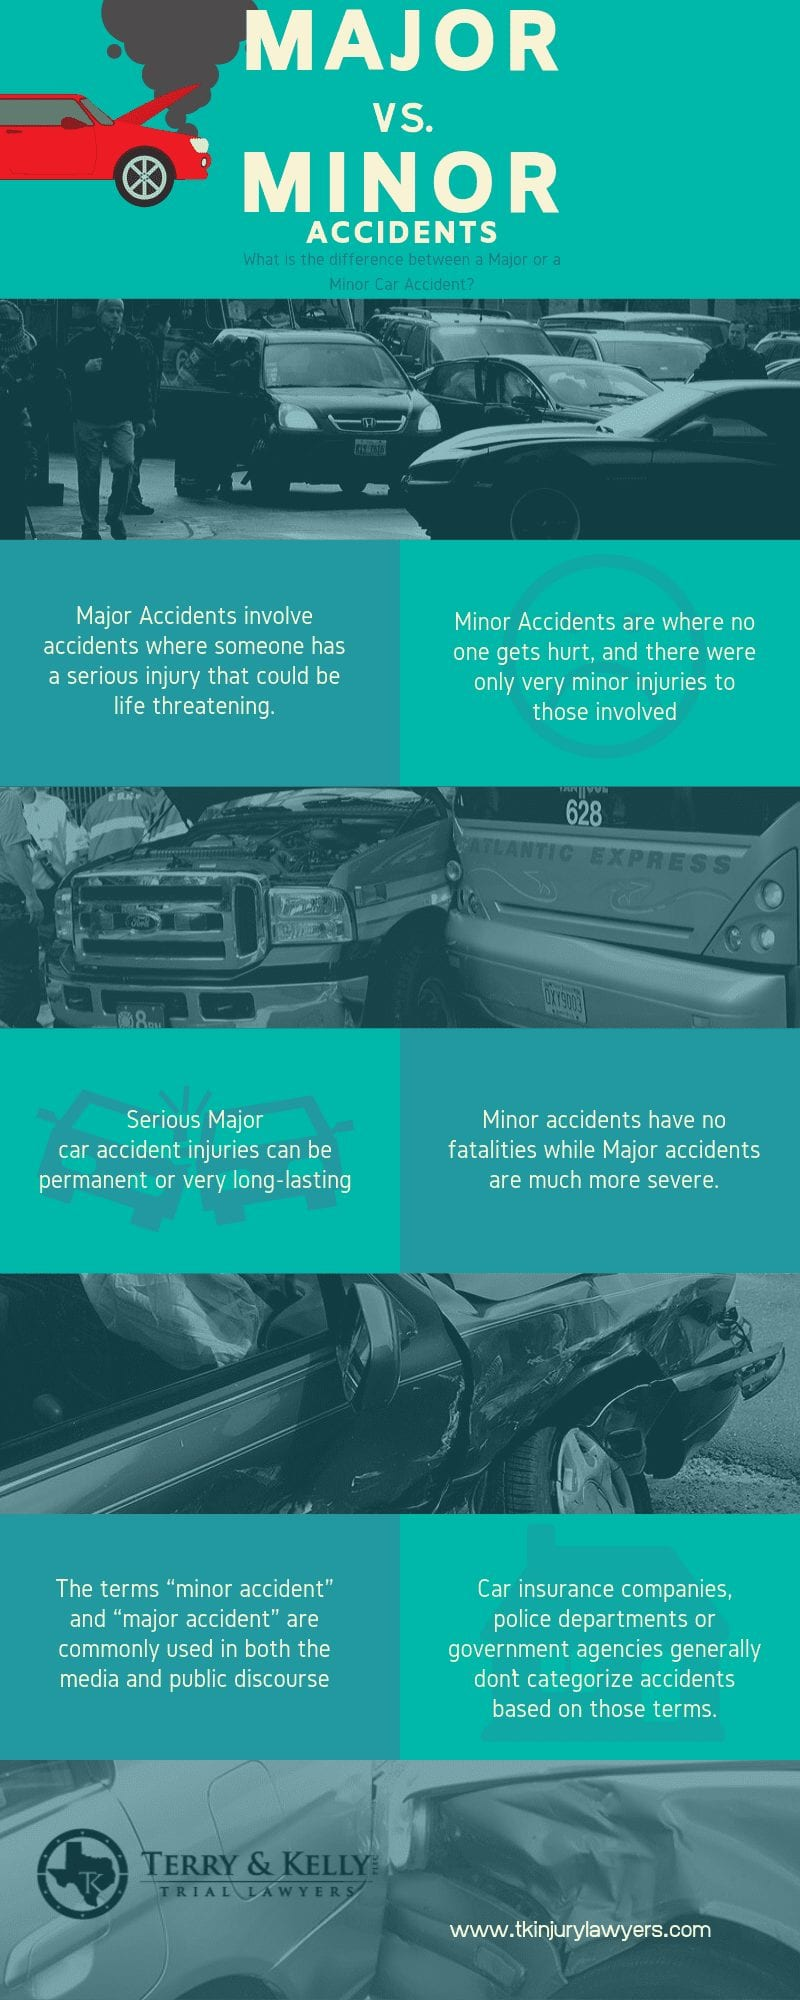 Differences Between Minor and Major Auto Accidents